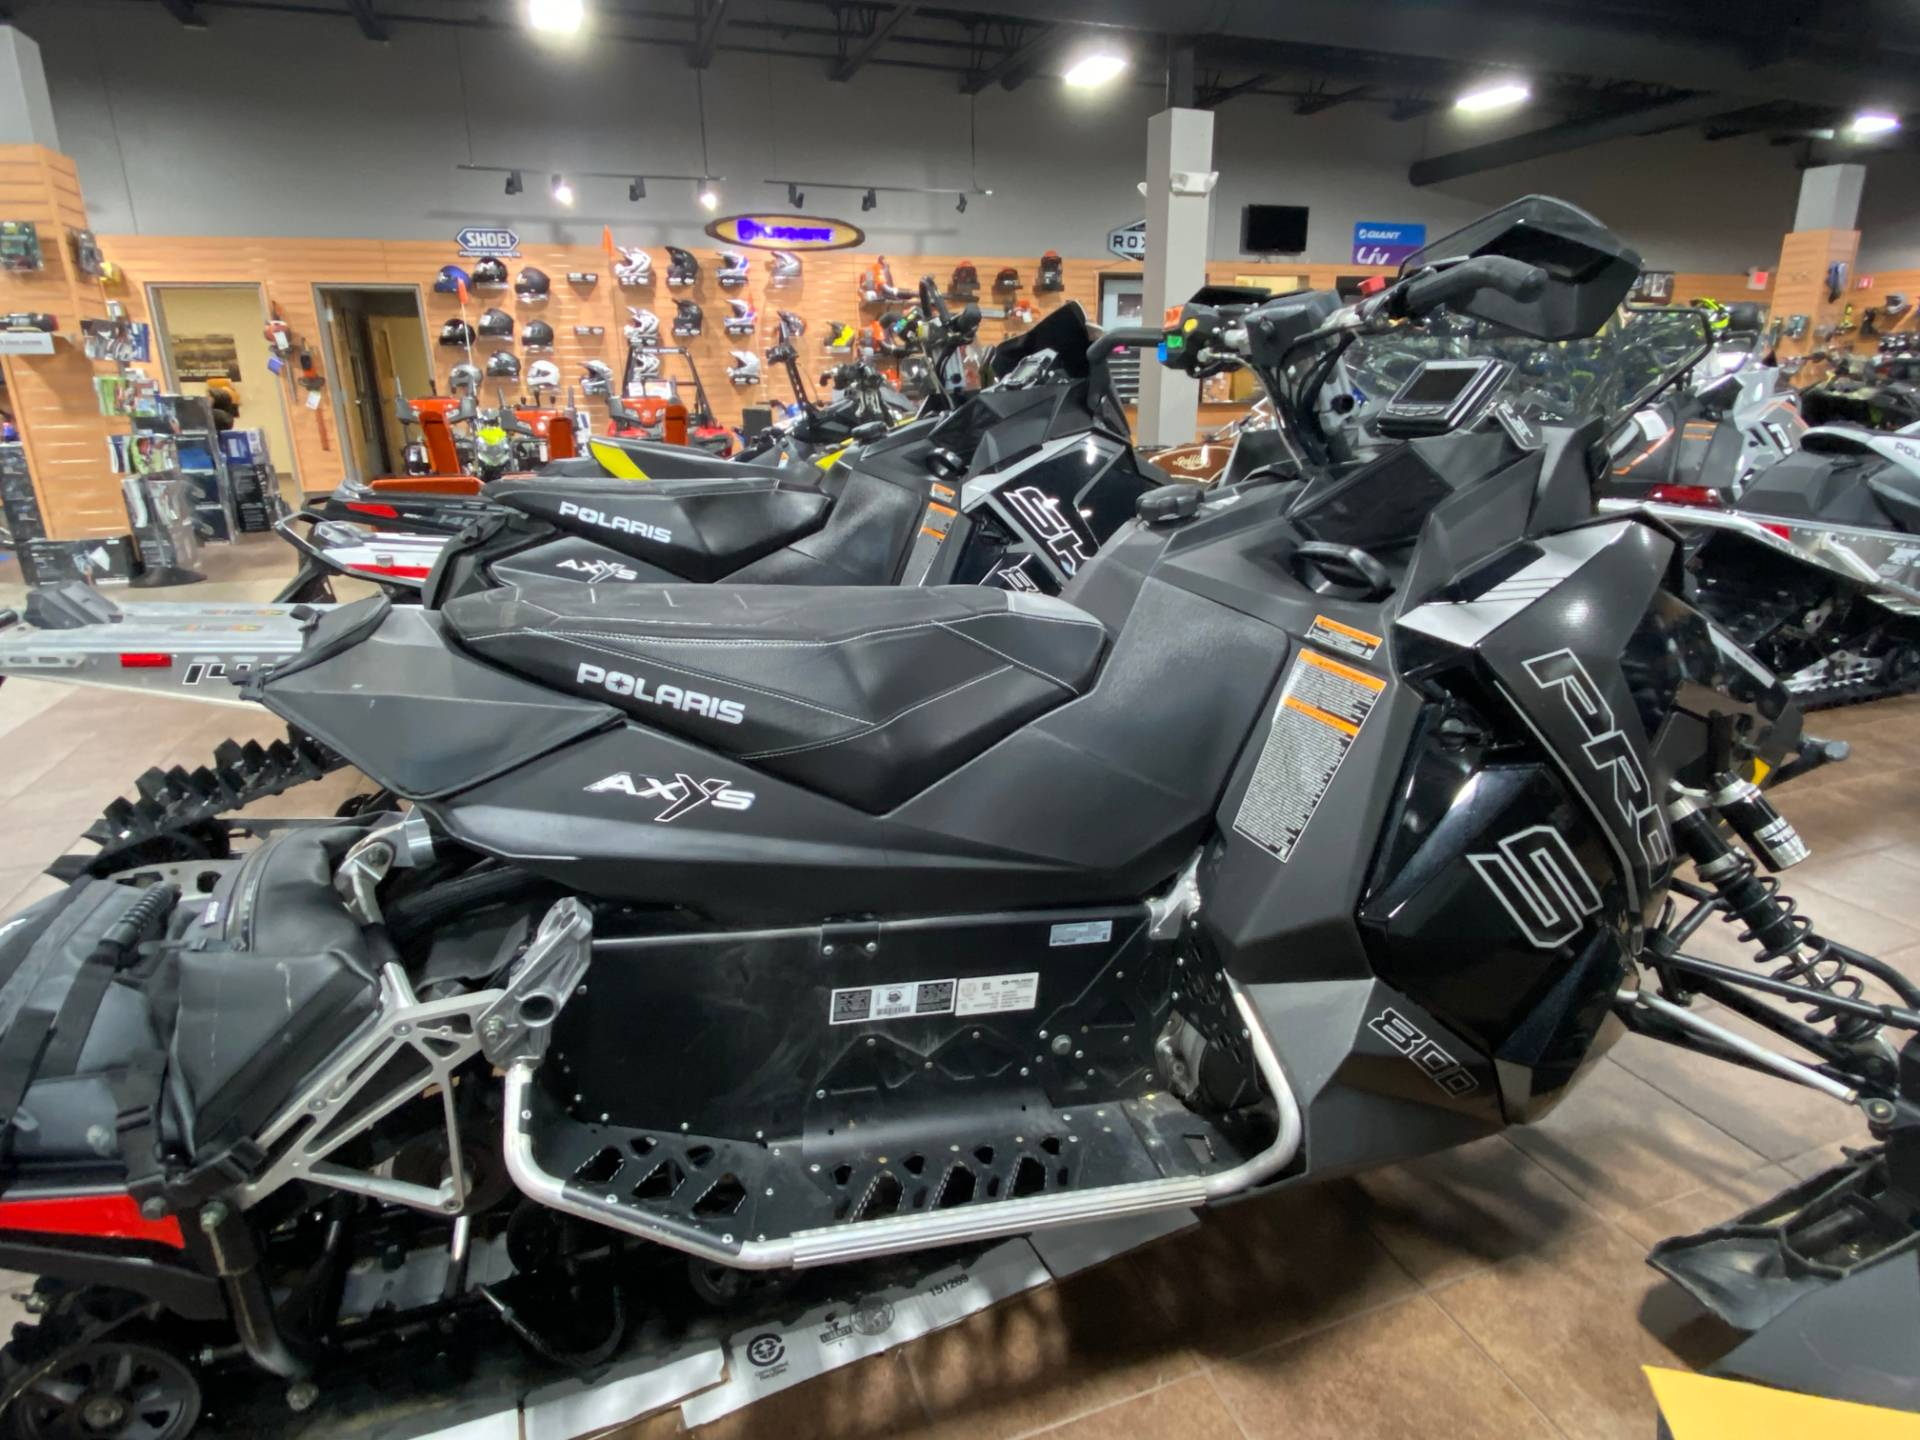 2016 Polaris 800 RUSH PRO-S LE in Barre, Massachusetts - Photo 4